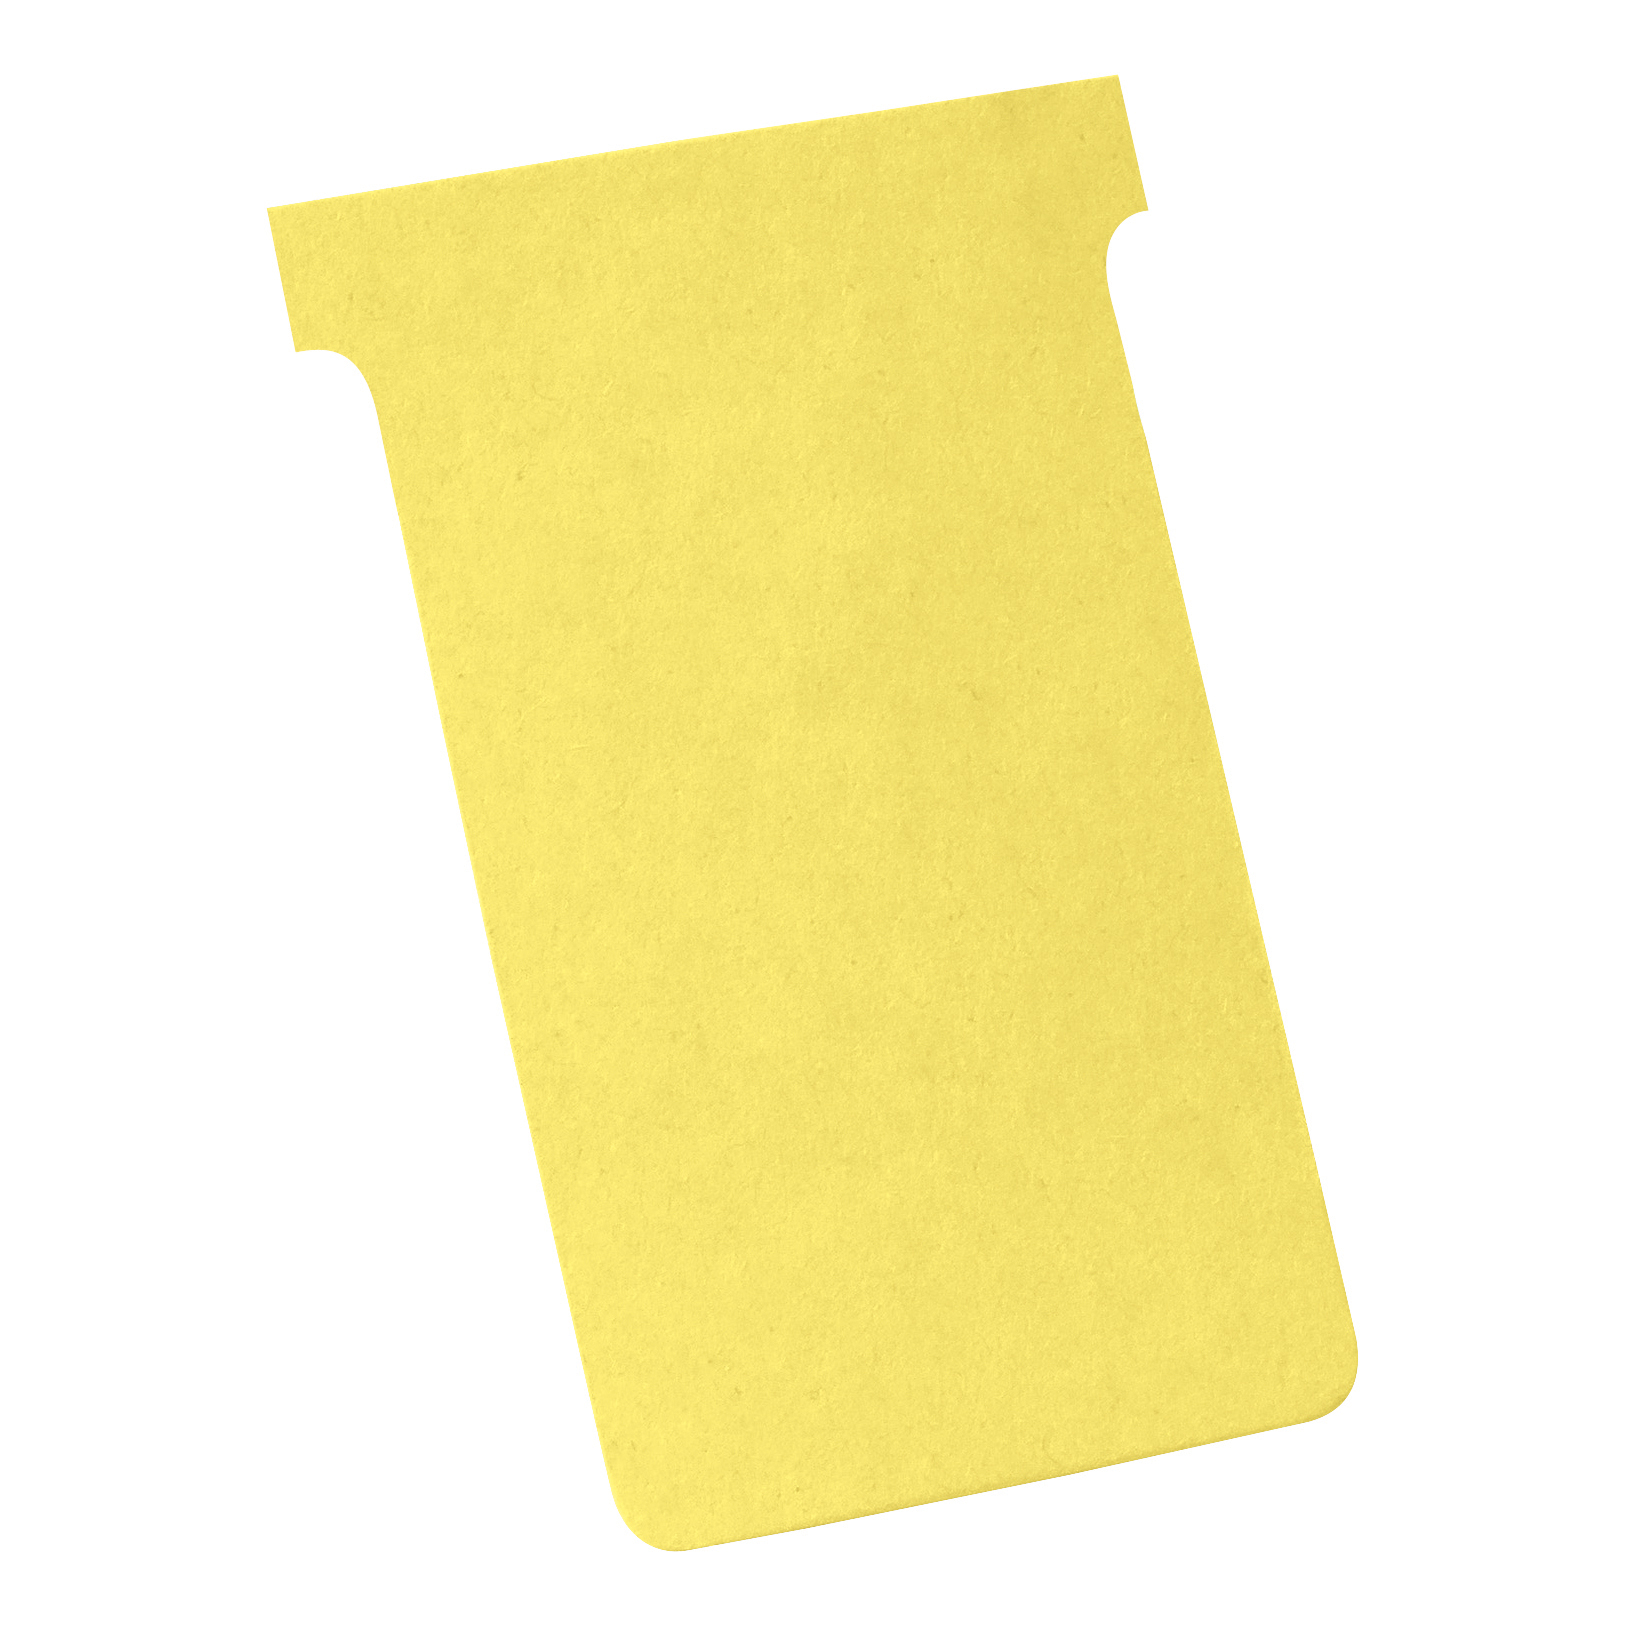 T Cards Nobo T-Cards 160gsm Tab Top 15mm W124x Bottom W112x Full H180mm Size 4 Yellow Ref 2004004 Pack 100